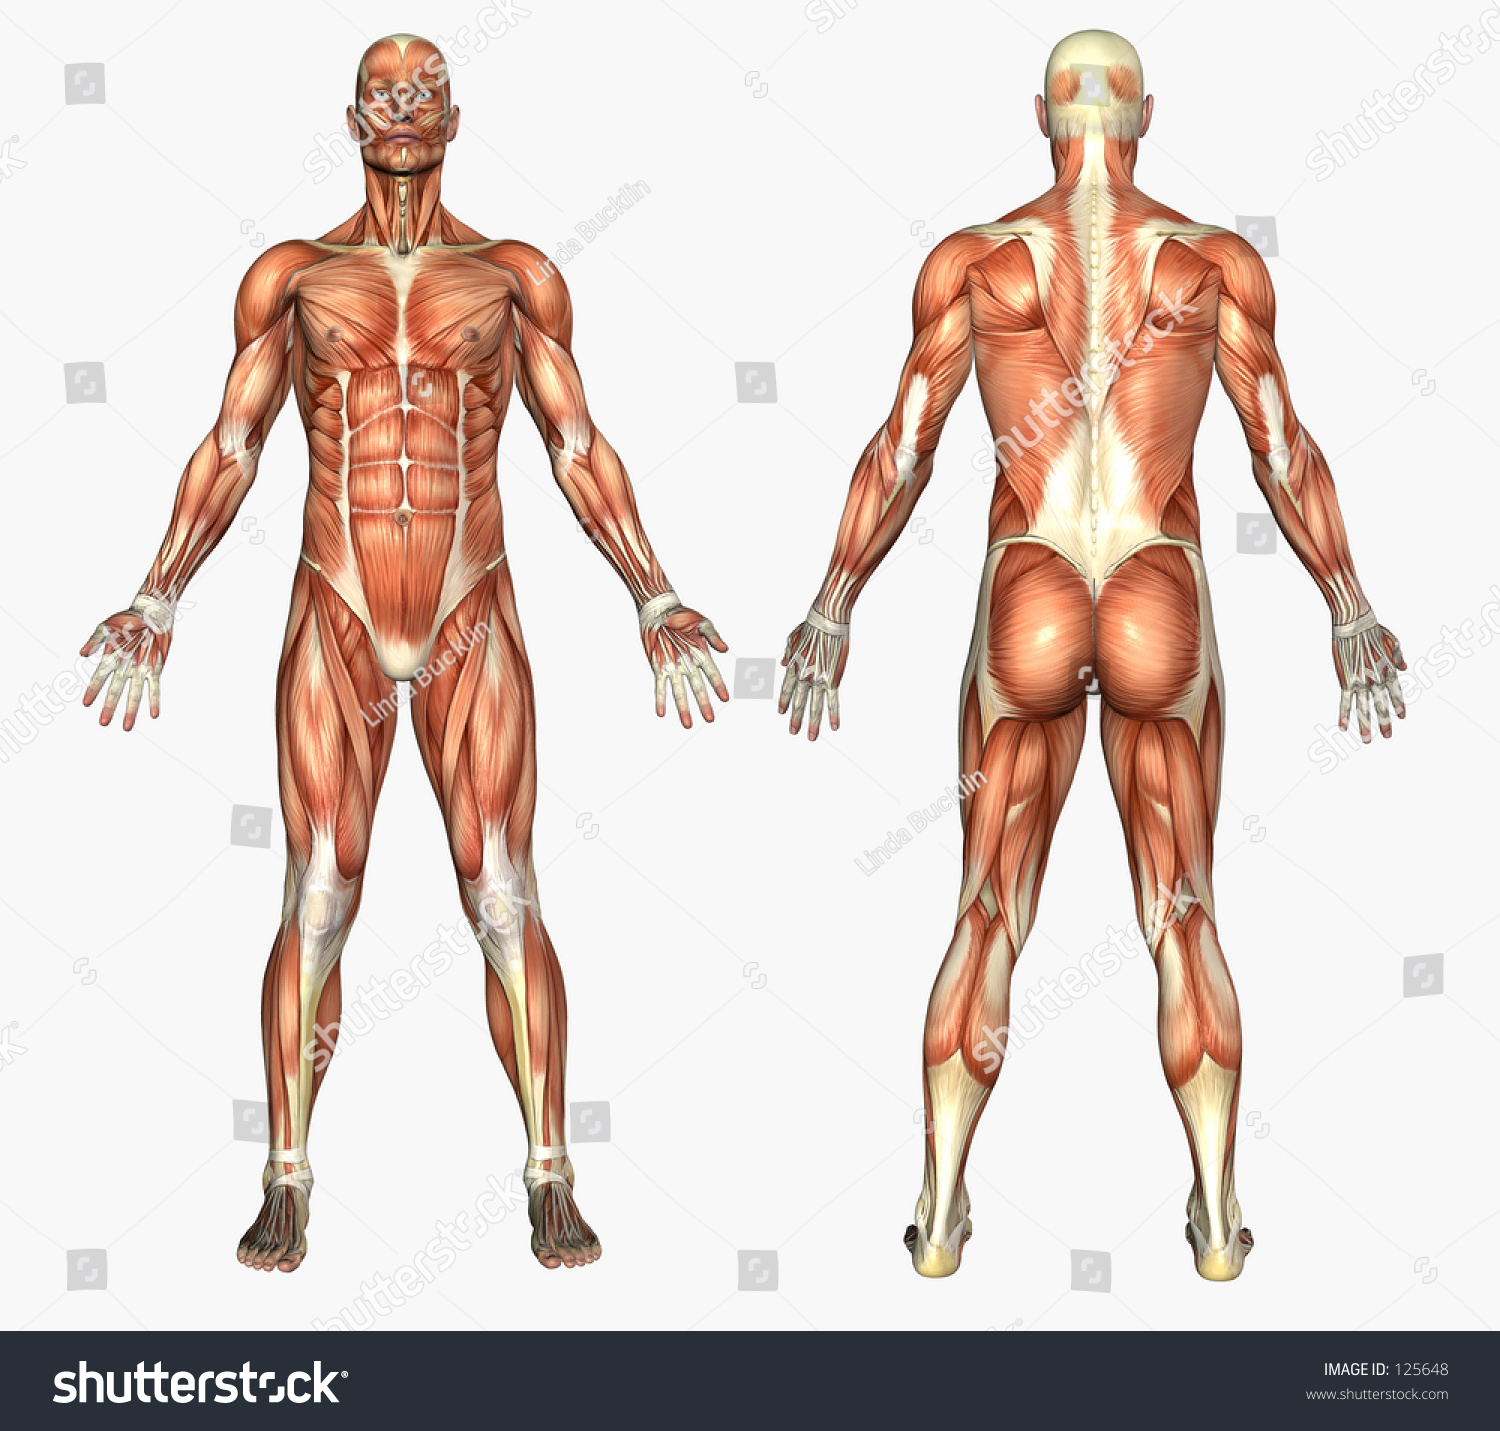 3 D Render Depicting Human Anatomy Muscles Stock Illustration 125648